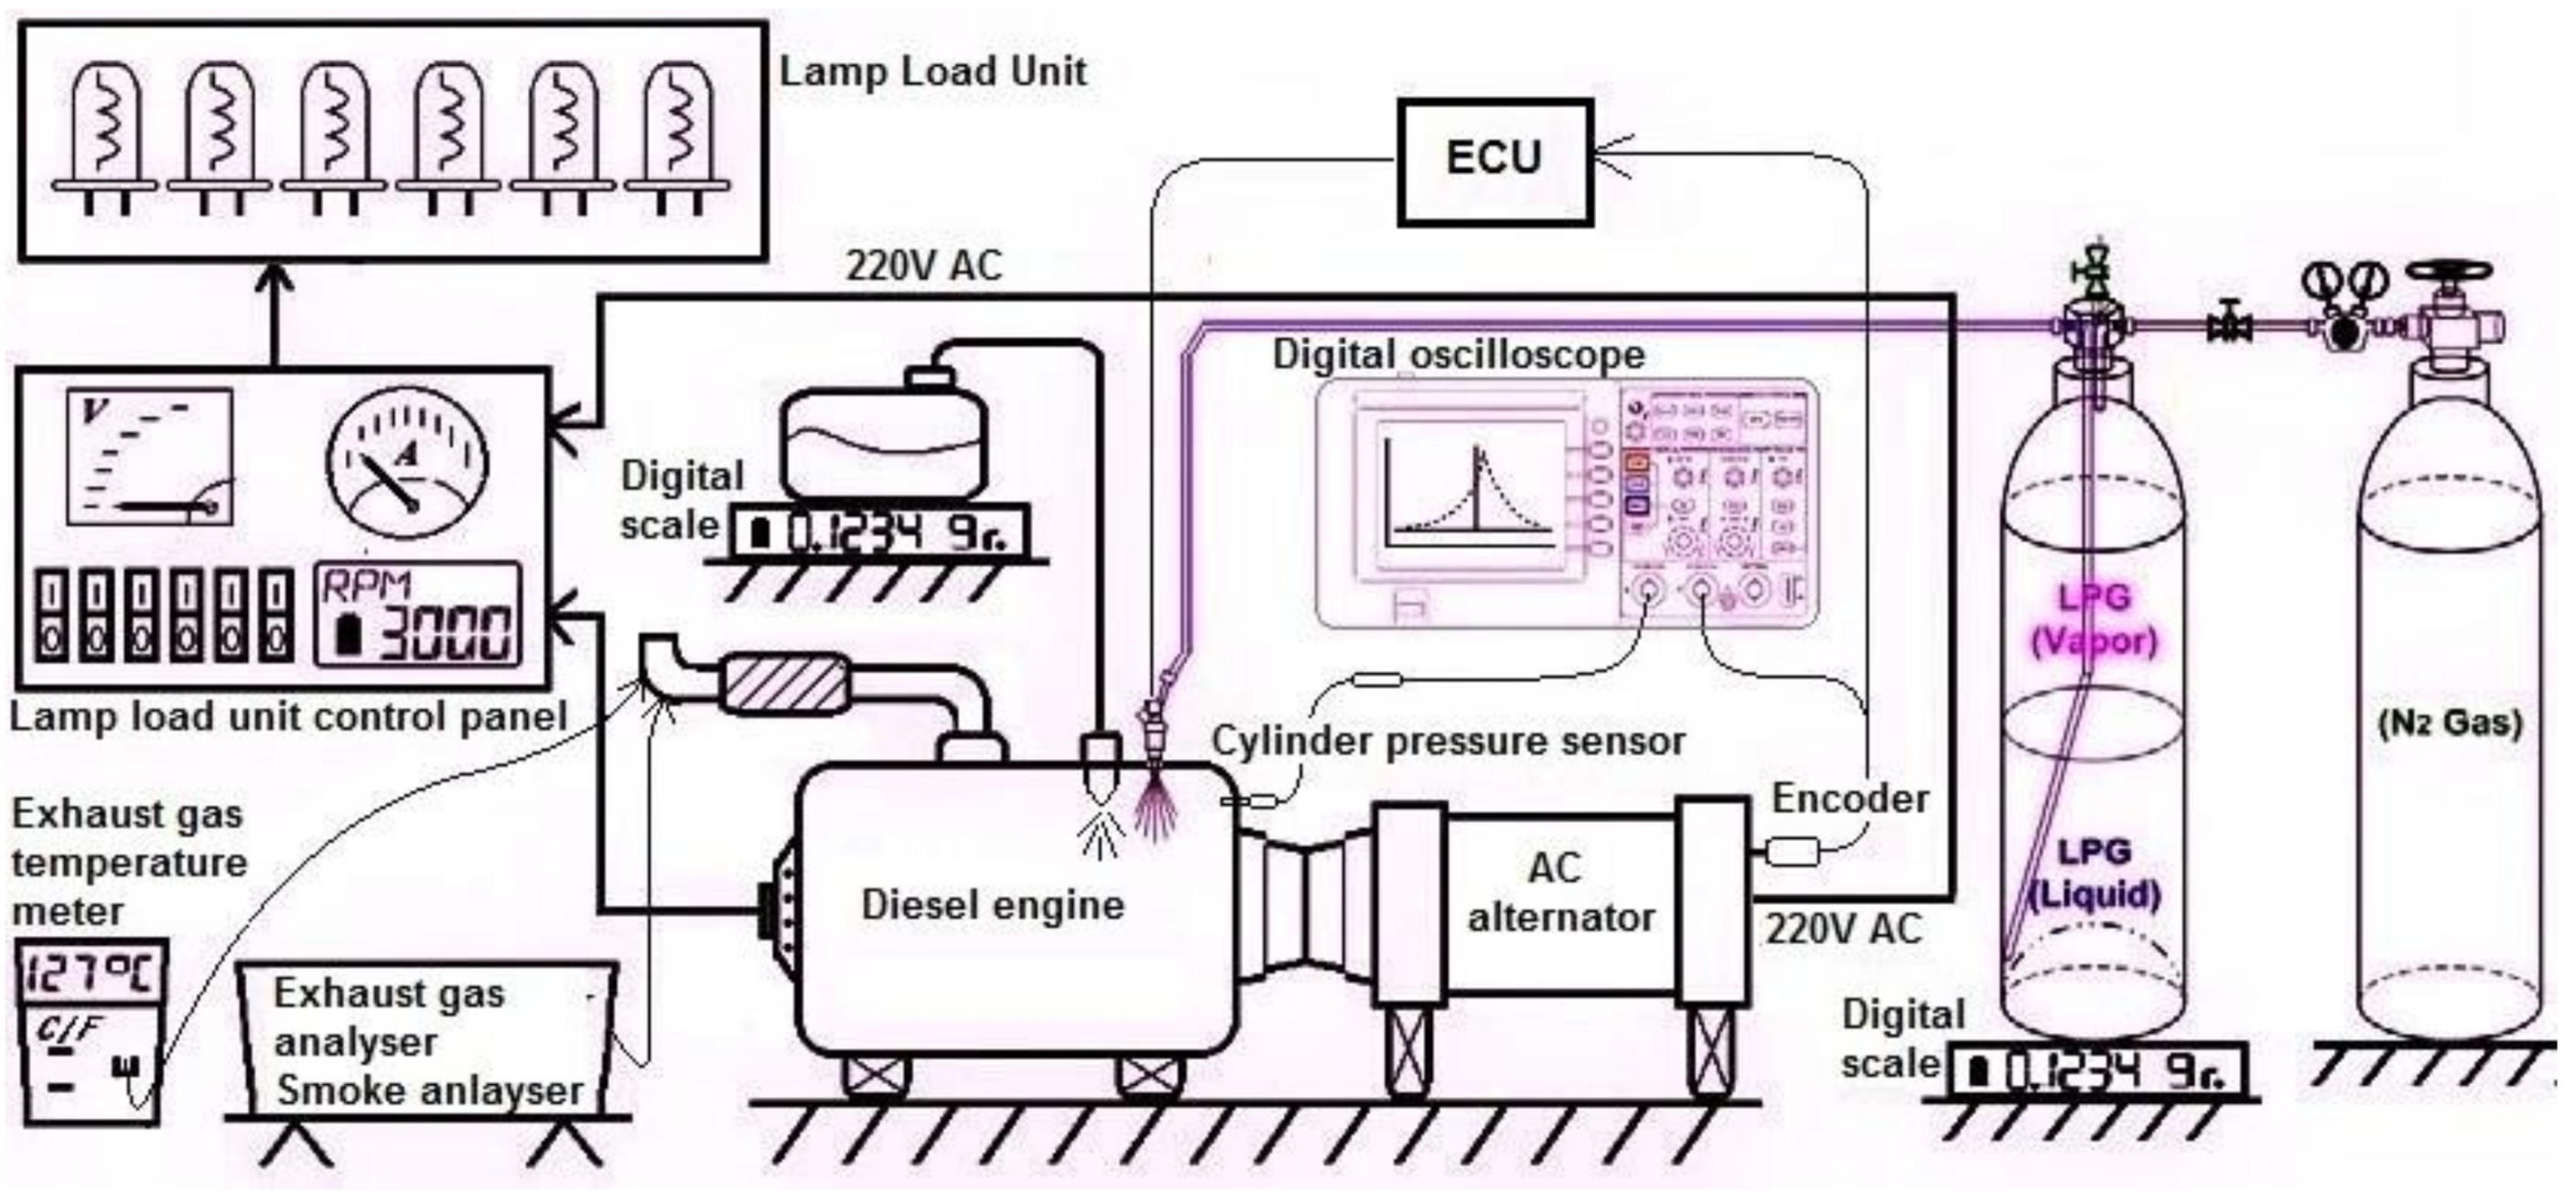 Applied Sciences | Free Full-Text | The Impact of Diesel/LPG Dual